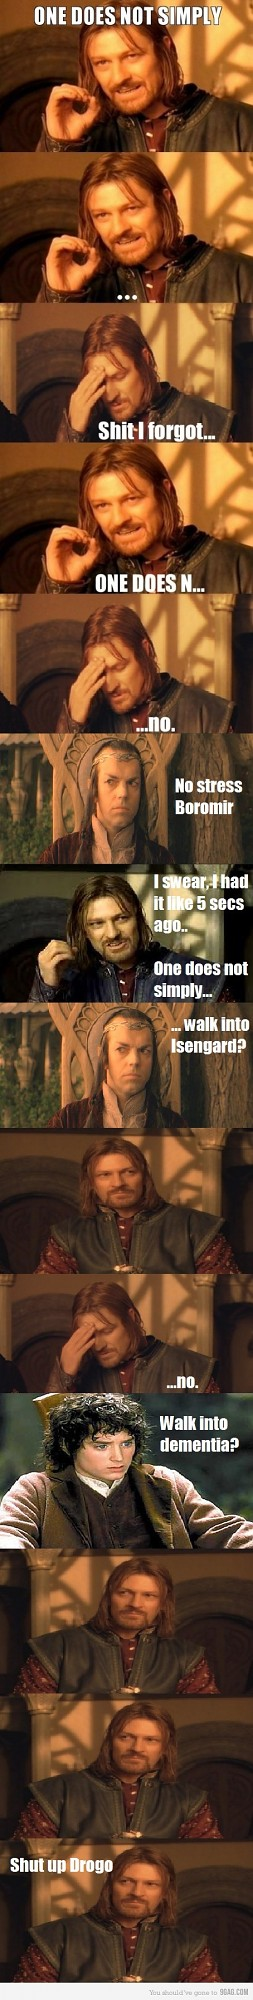 You forgot something, Boromir?